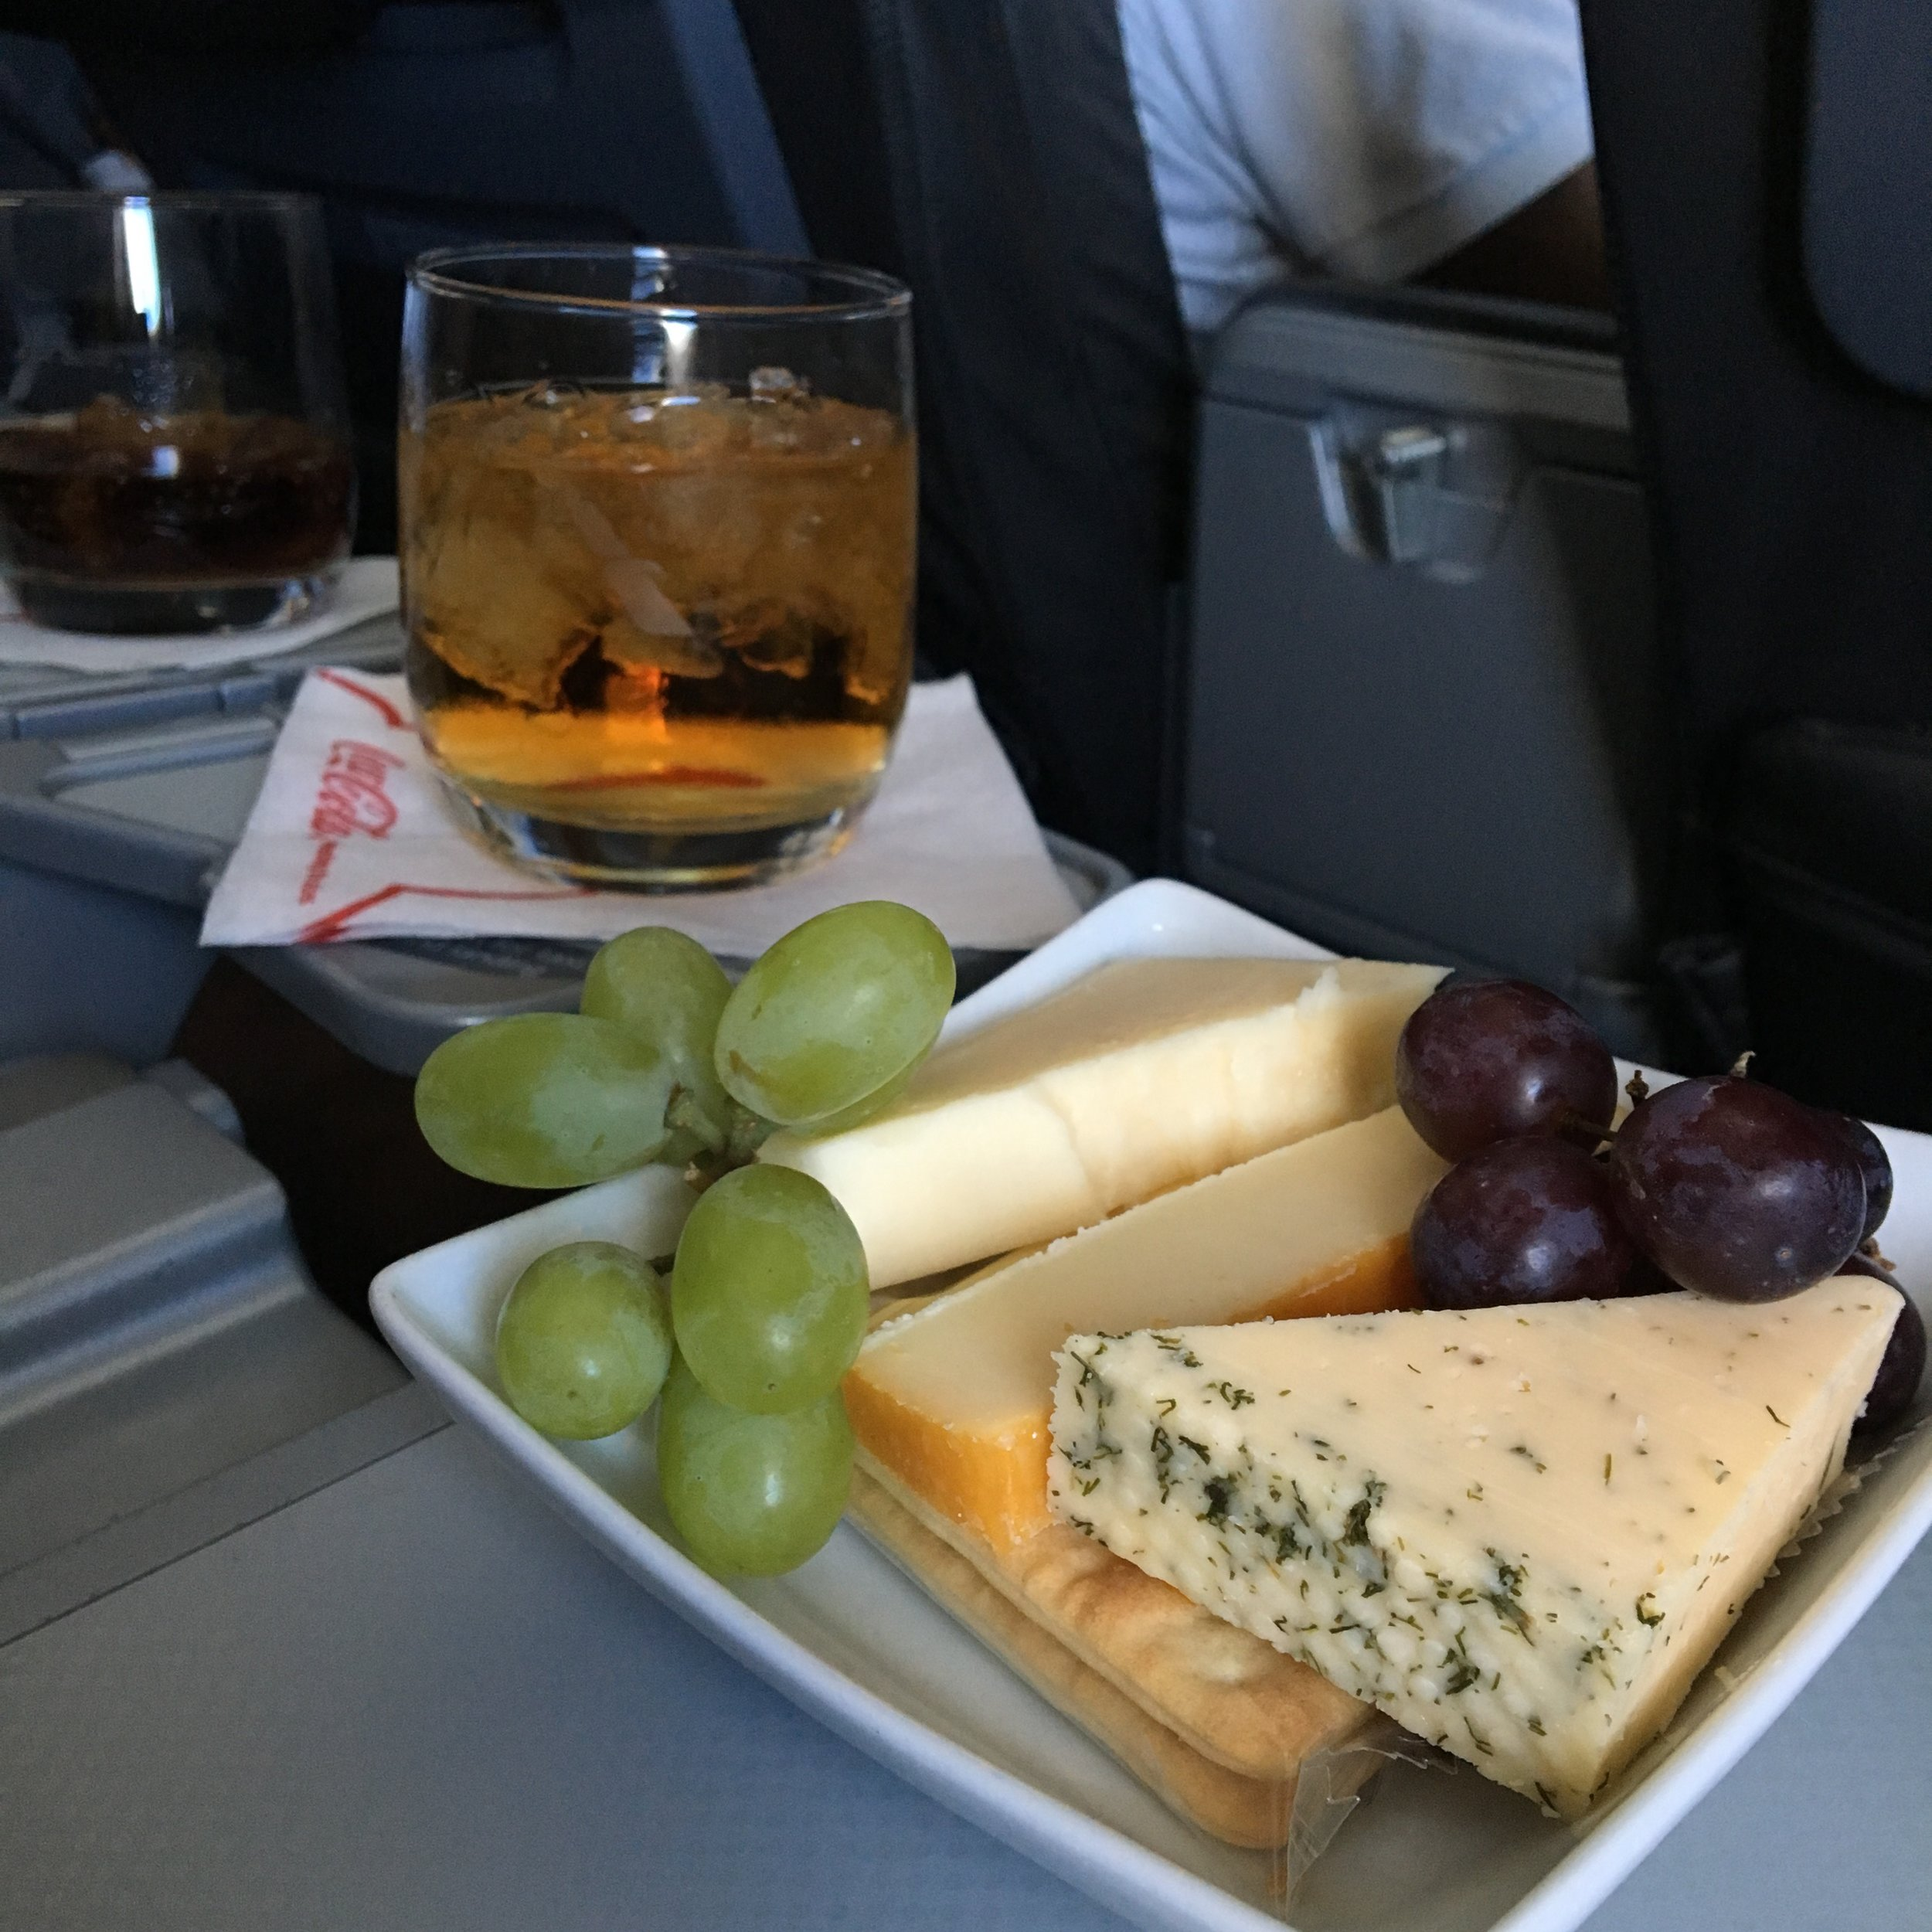 First class on an International Flight doesn't play any games when it comes to food or booze. Thank you, American Airlines.